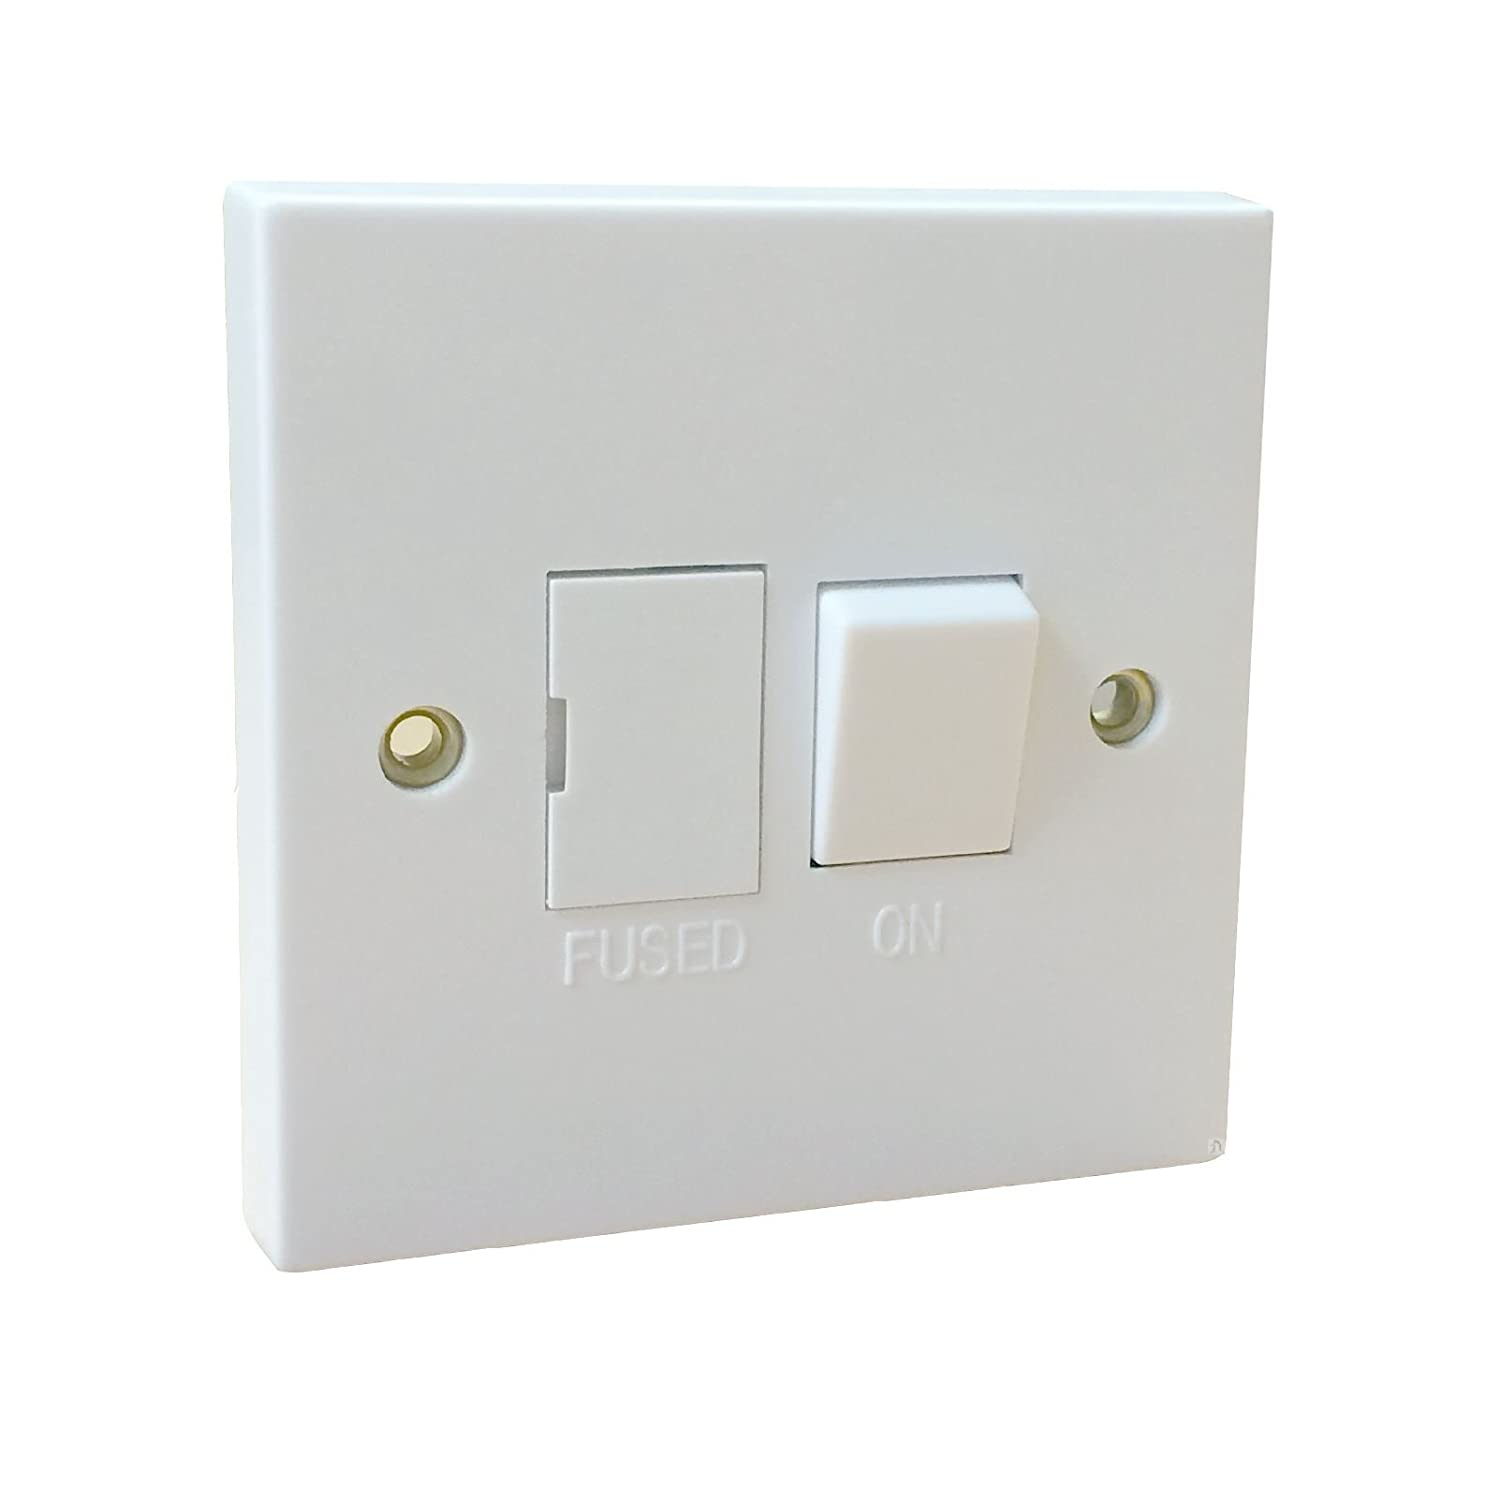 White Single Fused Switched Spur / Square Edge 1 Gang Appliance Wall Switch 13A Red and Grey